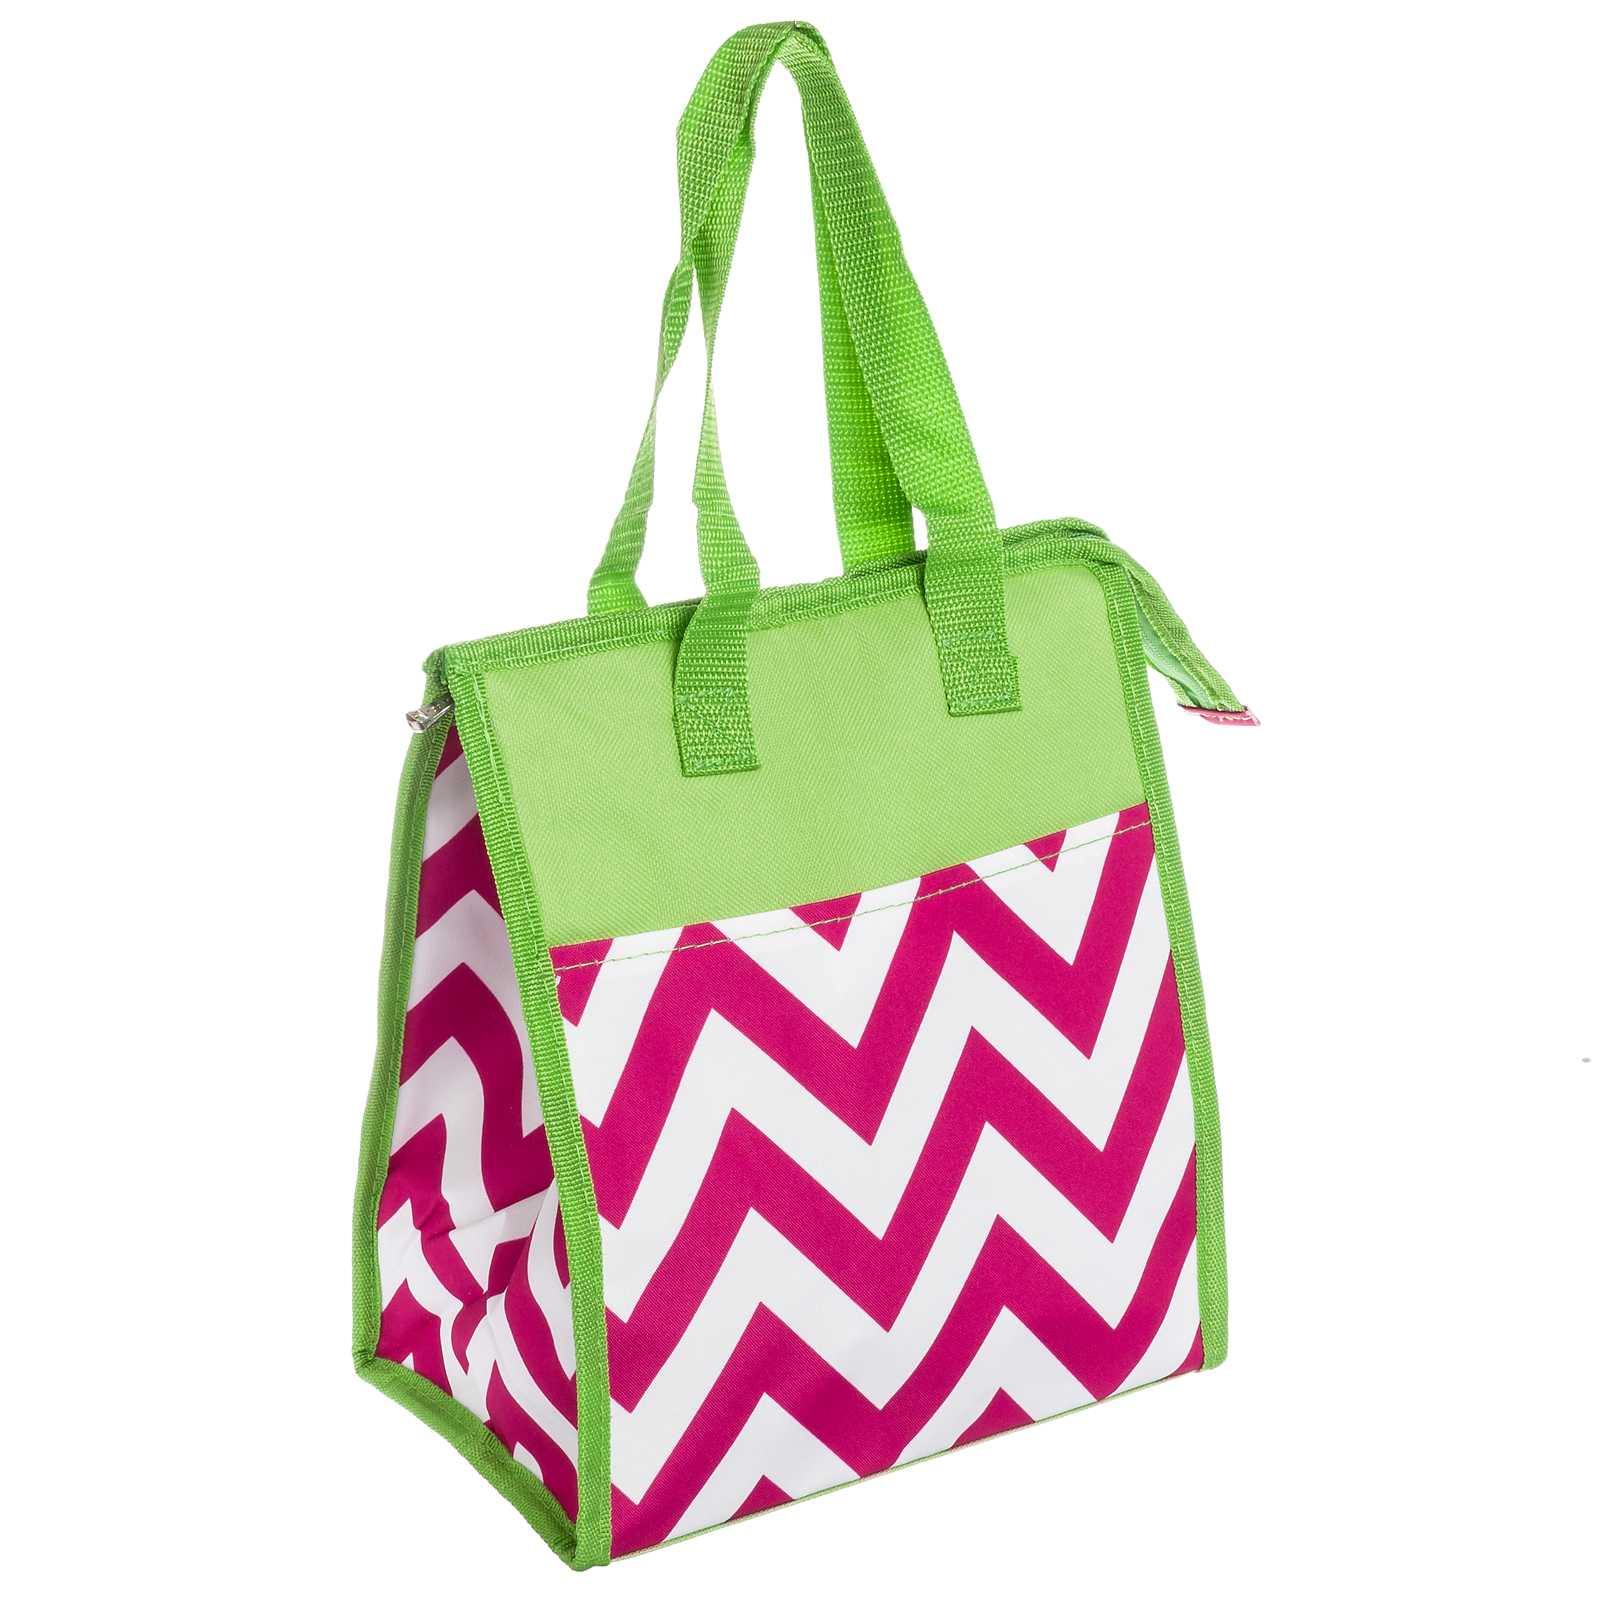 Lastest VEEVAN Lancheira Thermo Lunch Bag Cooler Insulated Lunch Bags For Women Kids Thermal Bag ...